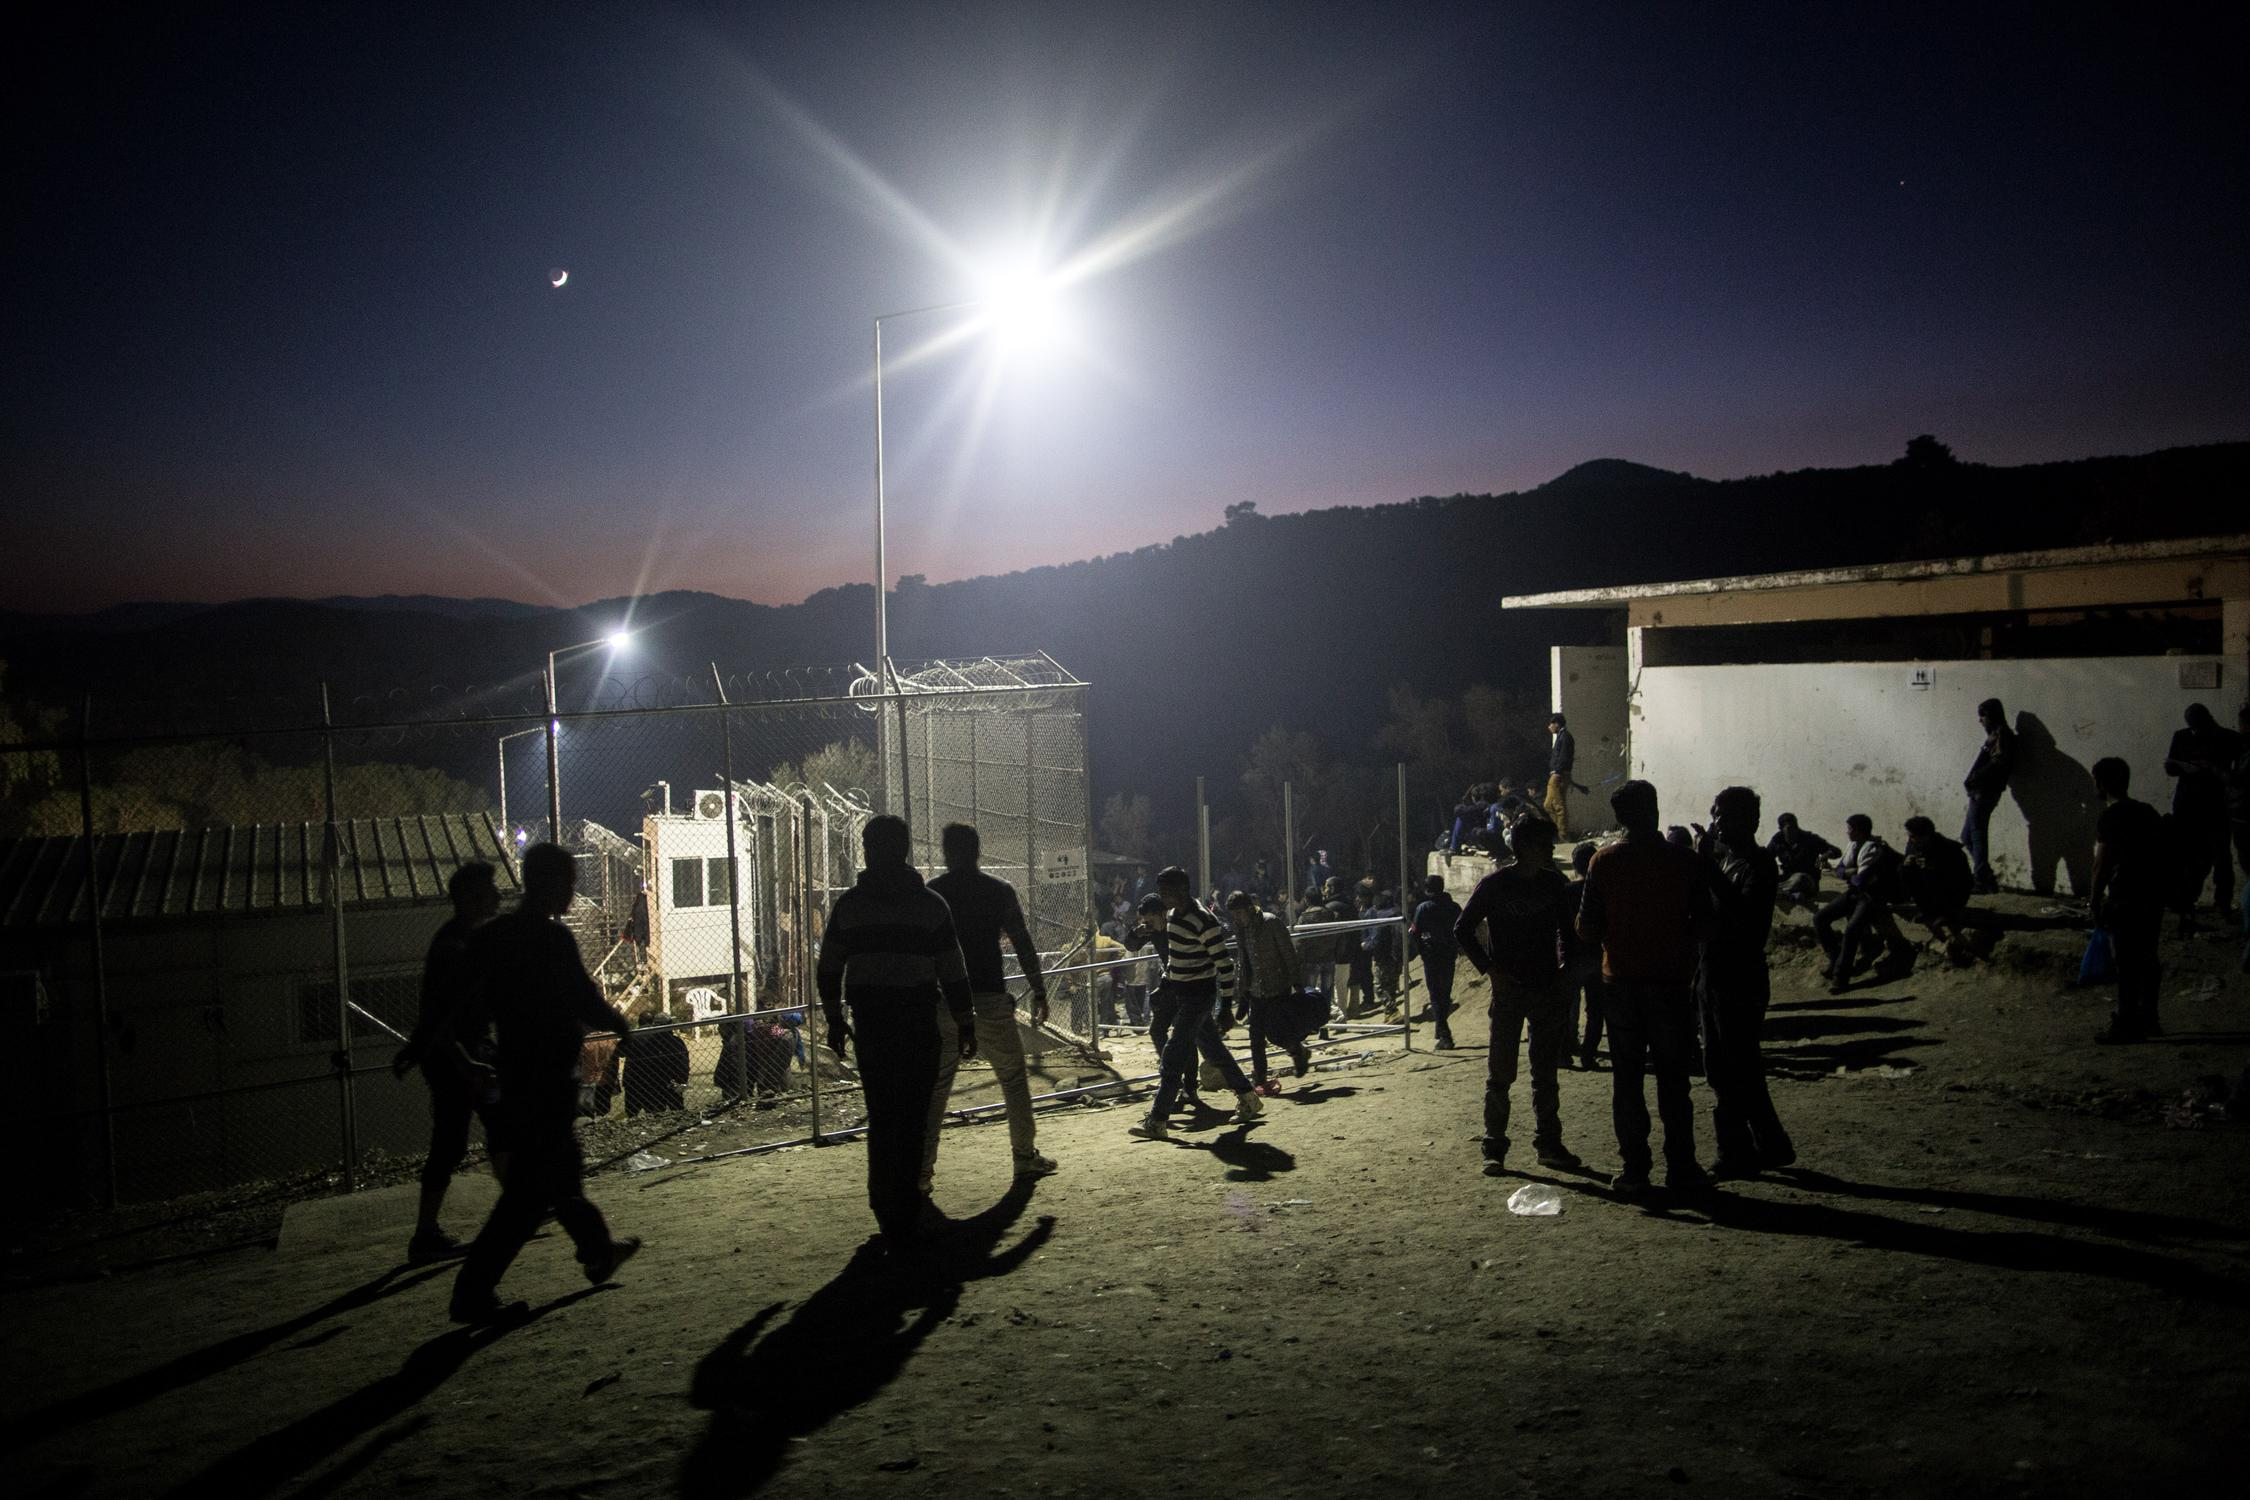 Migrants from Pakistan and Afghanistan waiting outside of the registration camp in Moria, Lesbos on October 14, 2015.